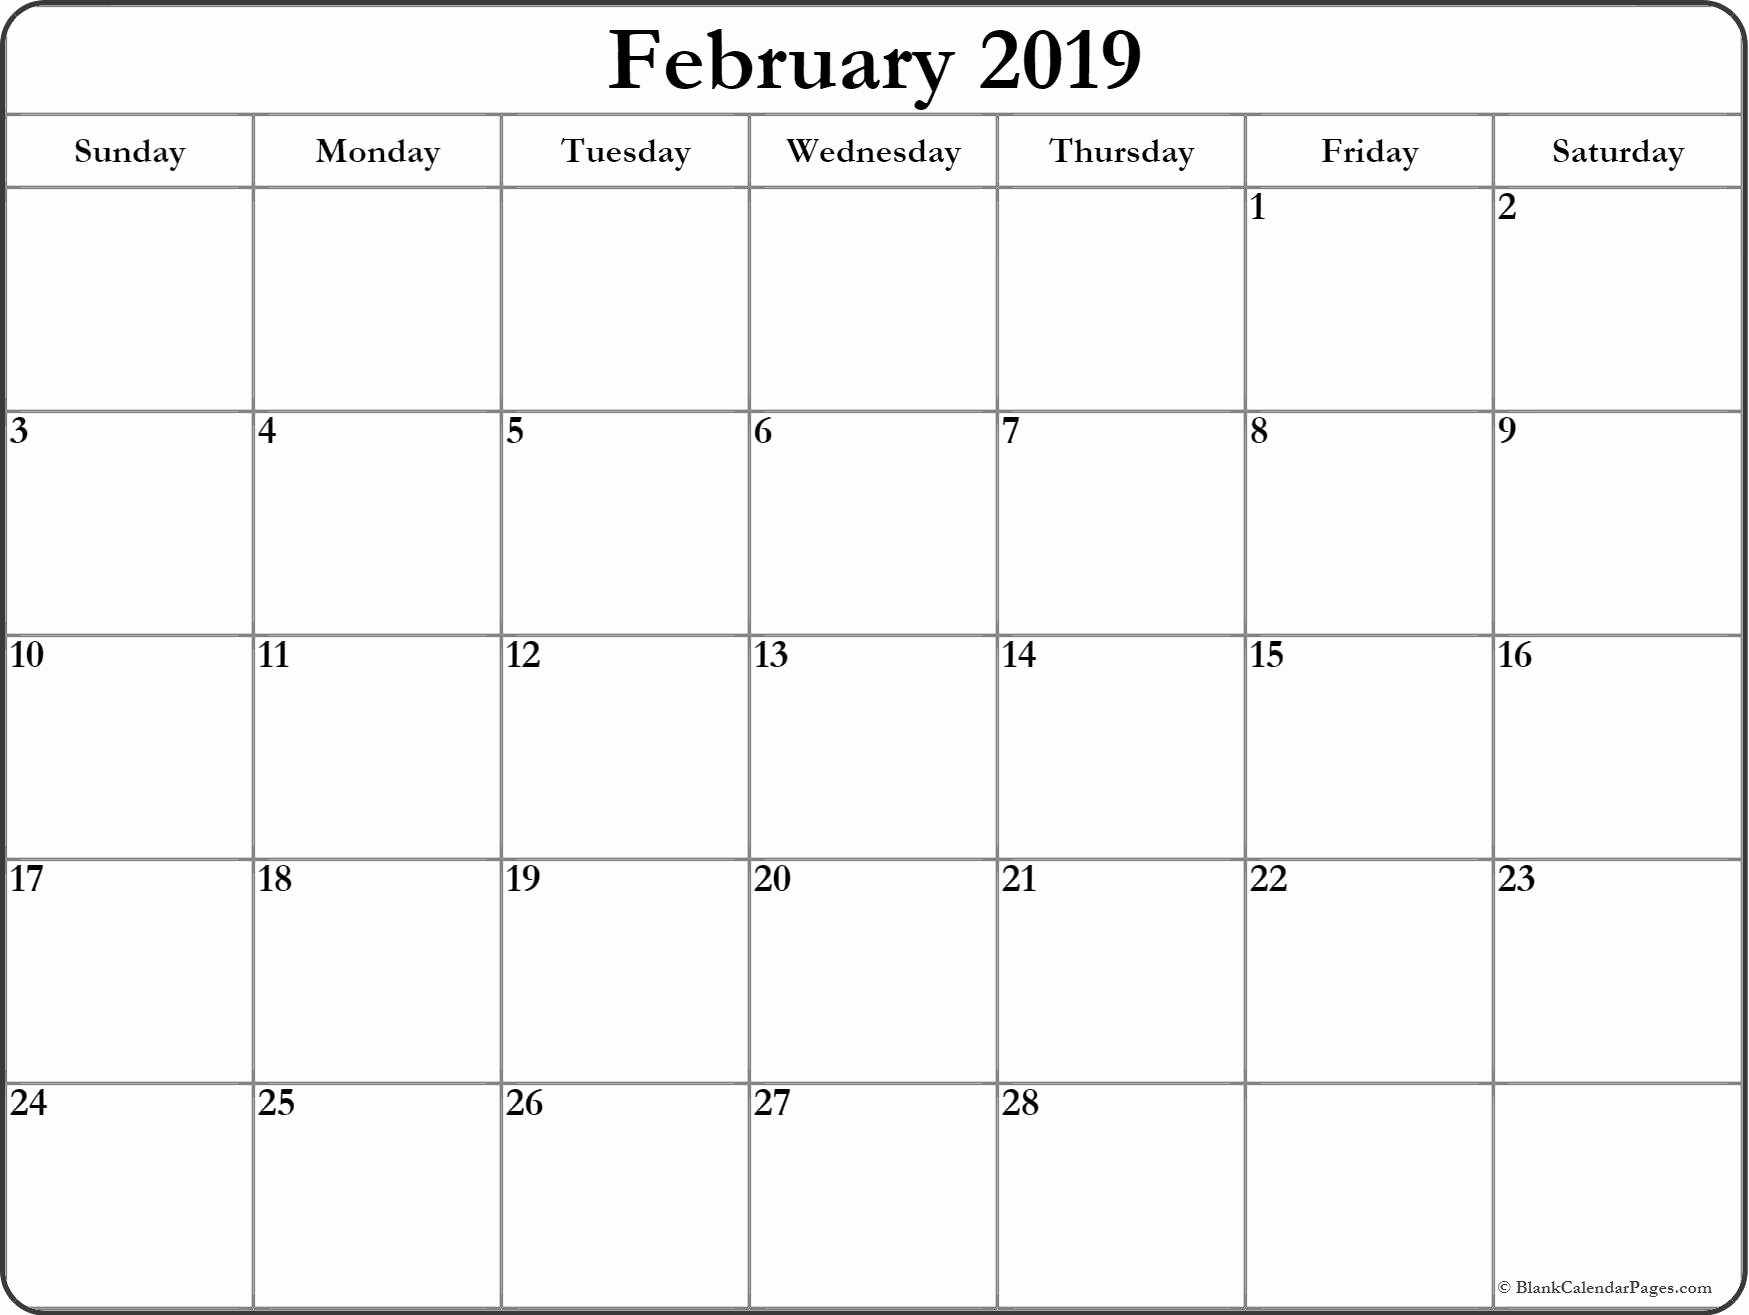 Free 2019 Calendar Template Lovely February 2019 Blank Calendar Templates